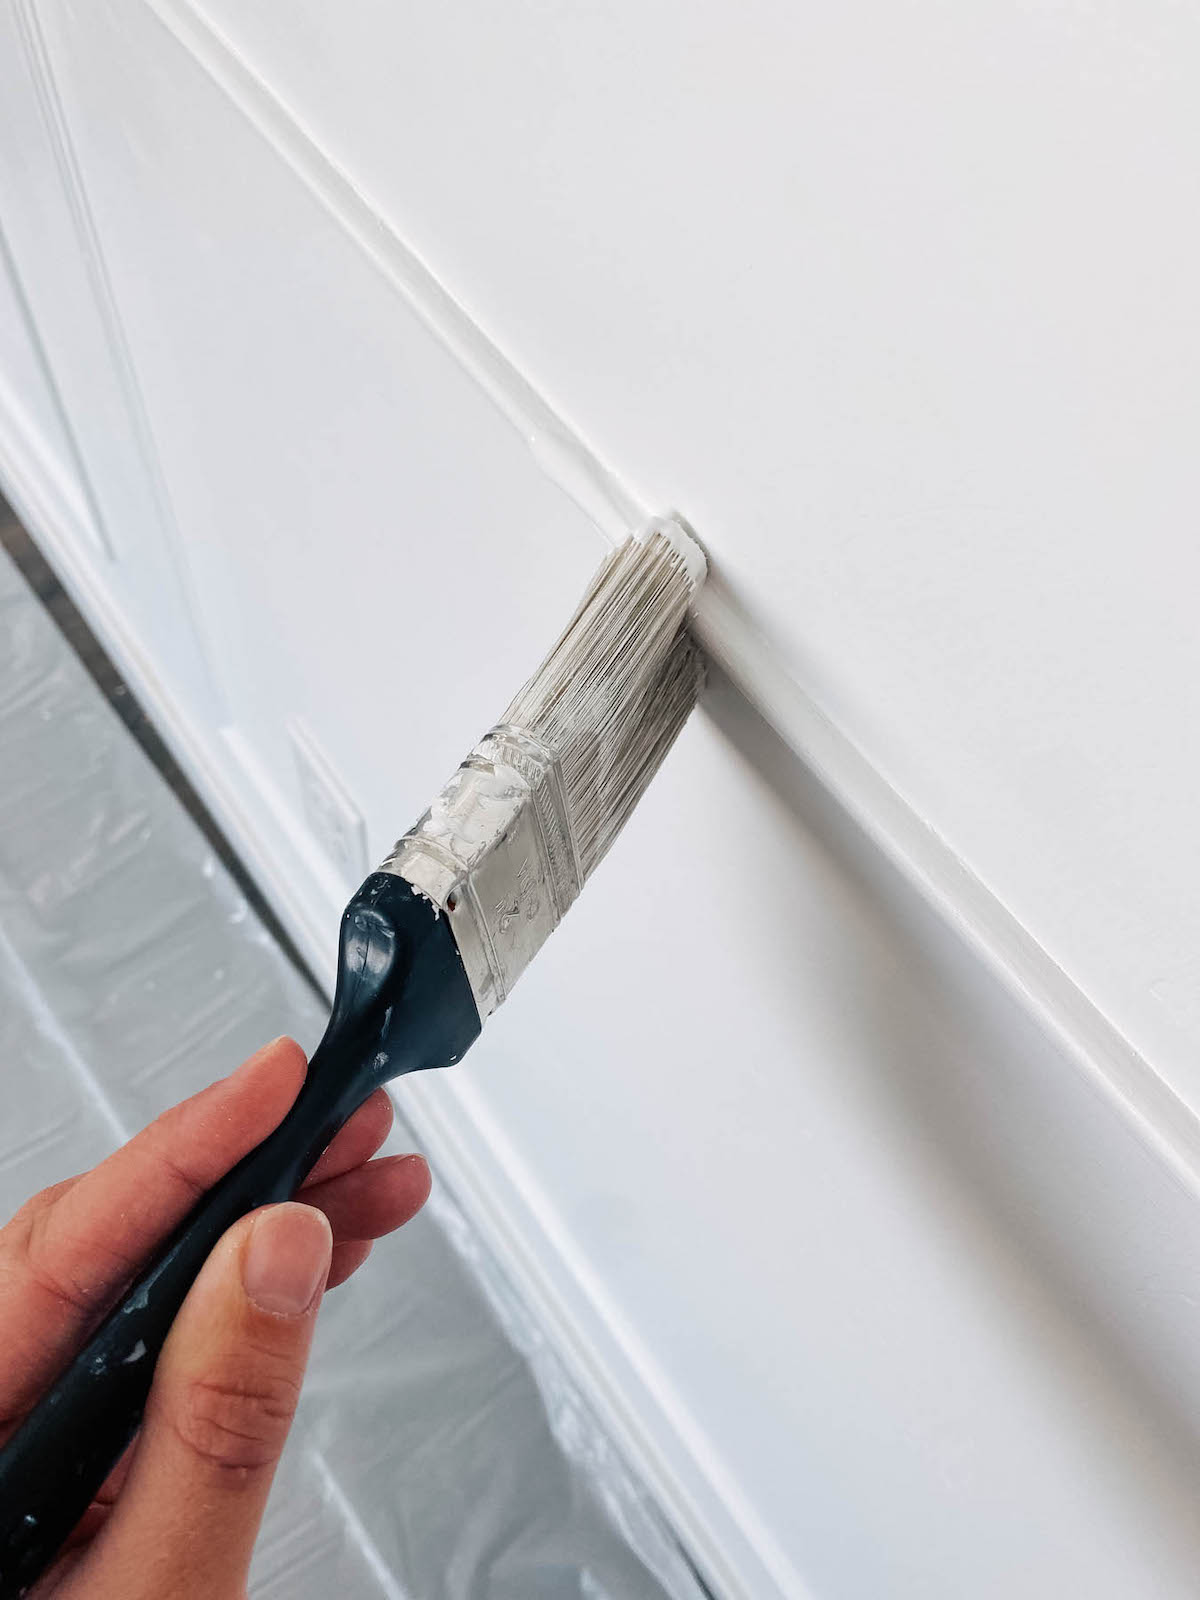 Woman uses paintbrush to paint picture frame moulding.